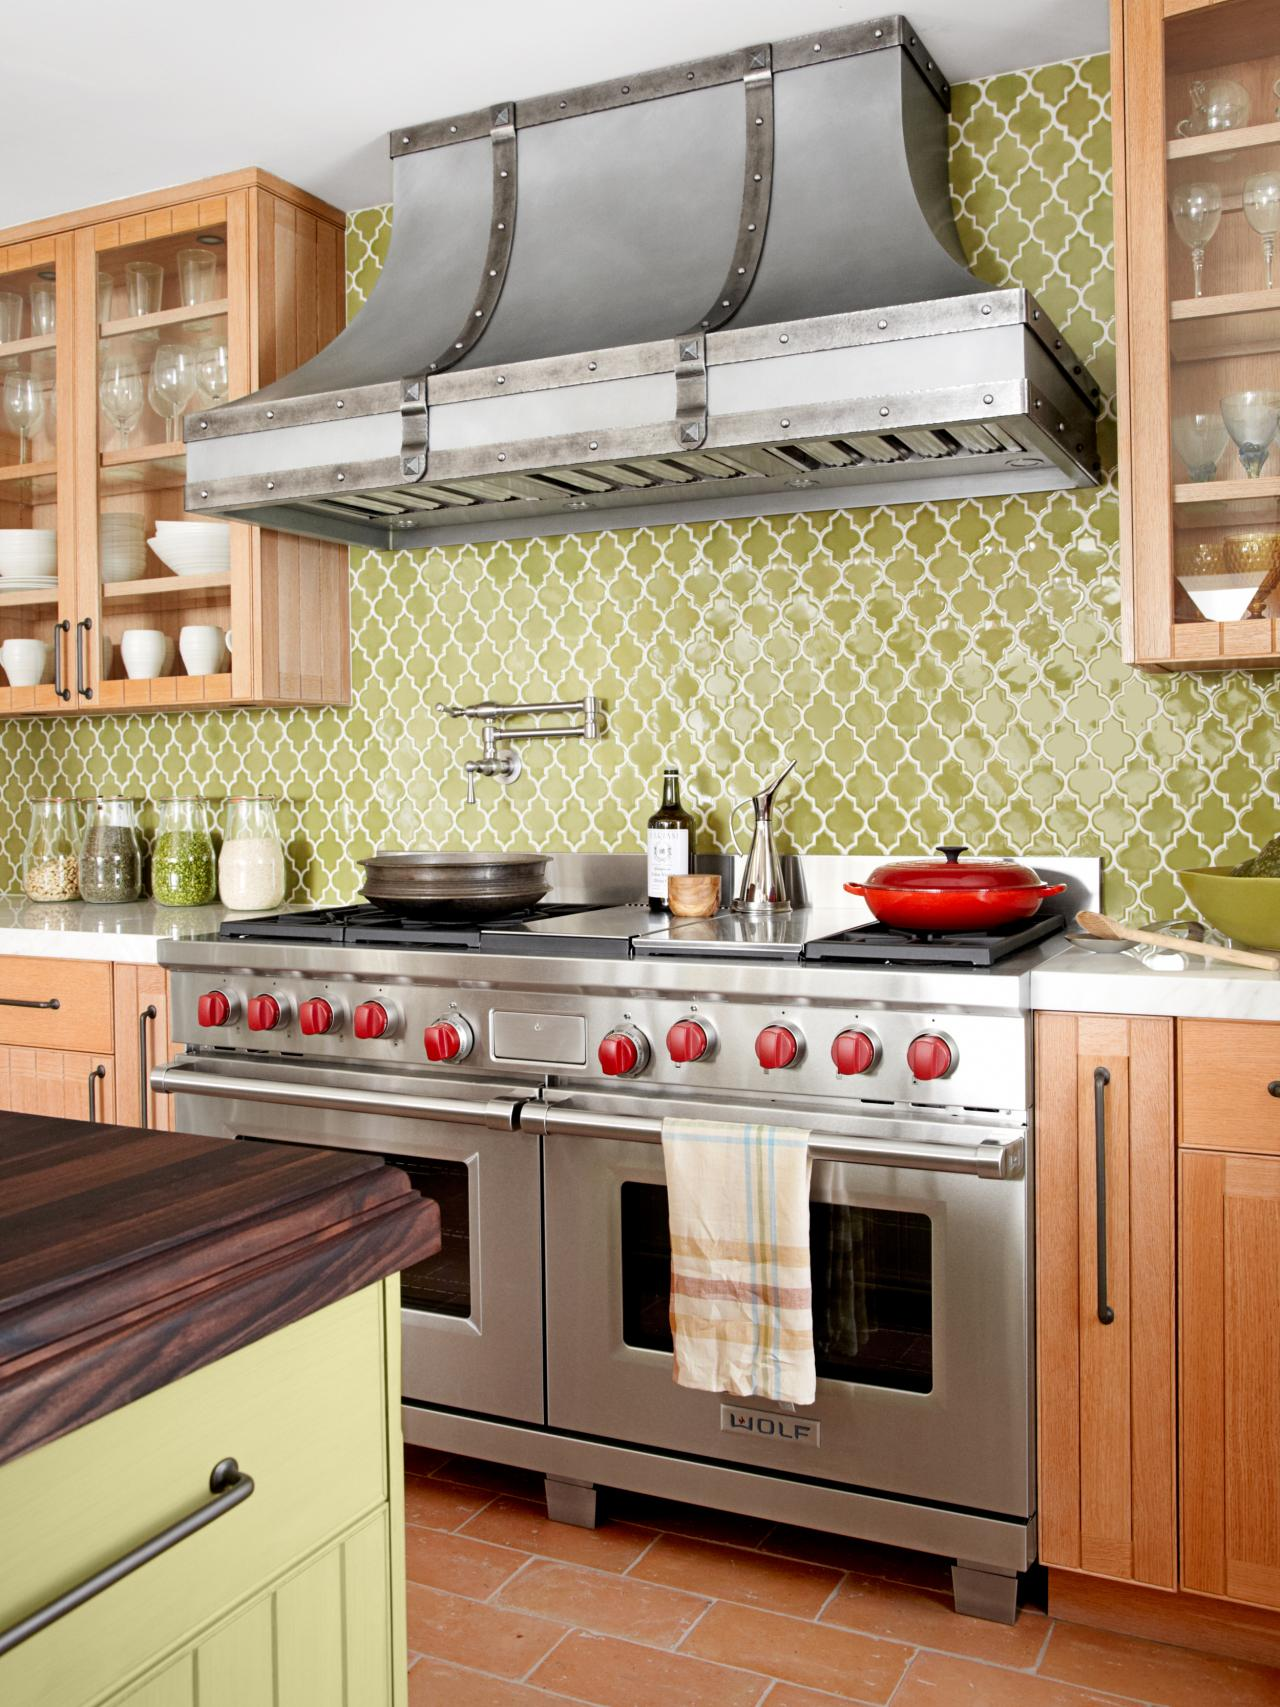 Uncategorized Green Kitchen Tile Backsplash 50 best kitchen backsplash ideas for 2017 dreaming of green